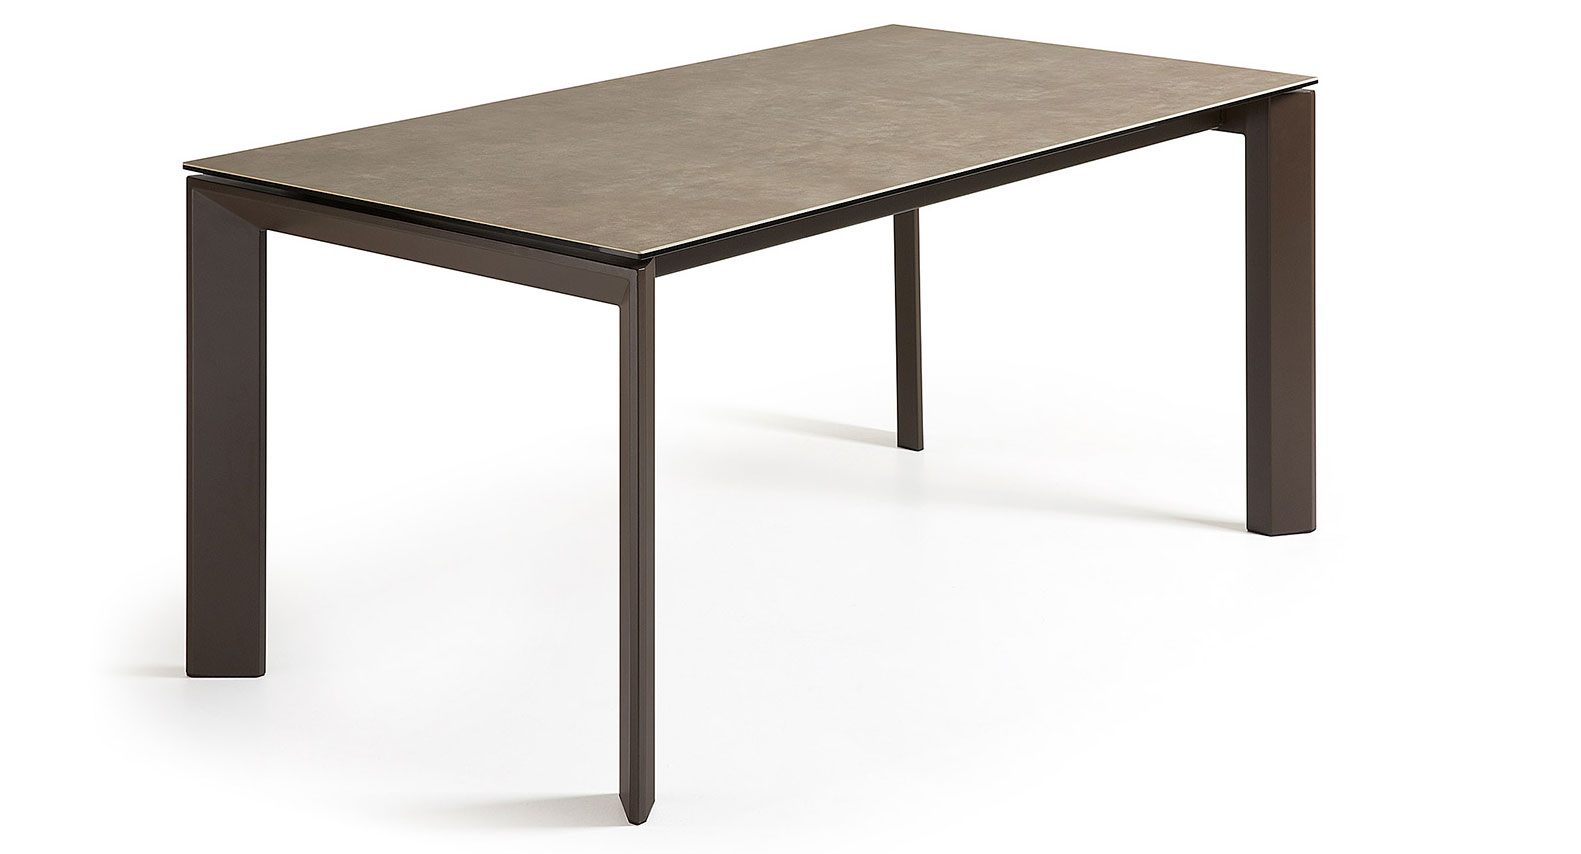 Mesa comedor extensible vulcano humo no disponible en for Mesa comedor extensible